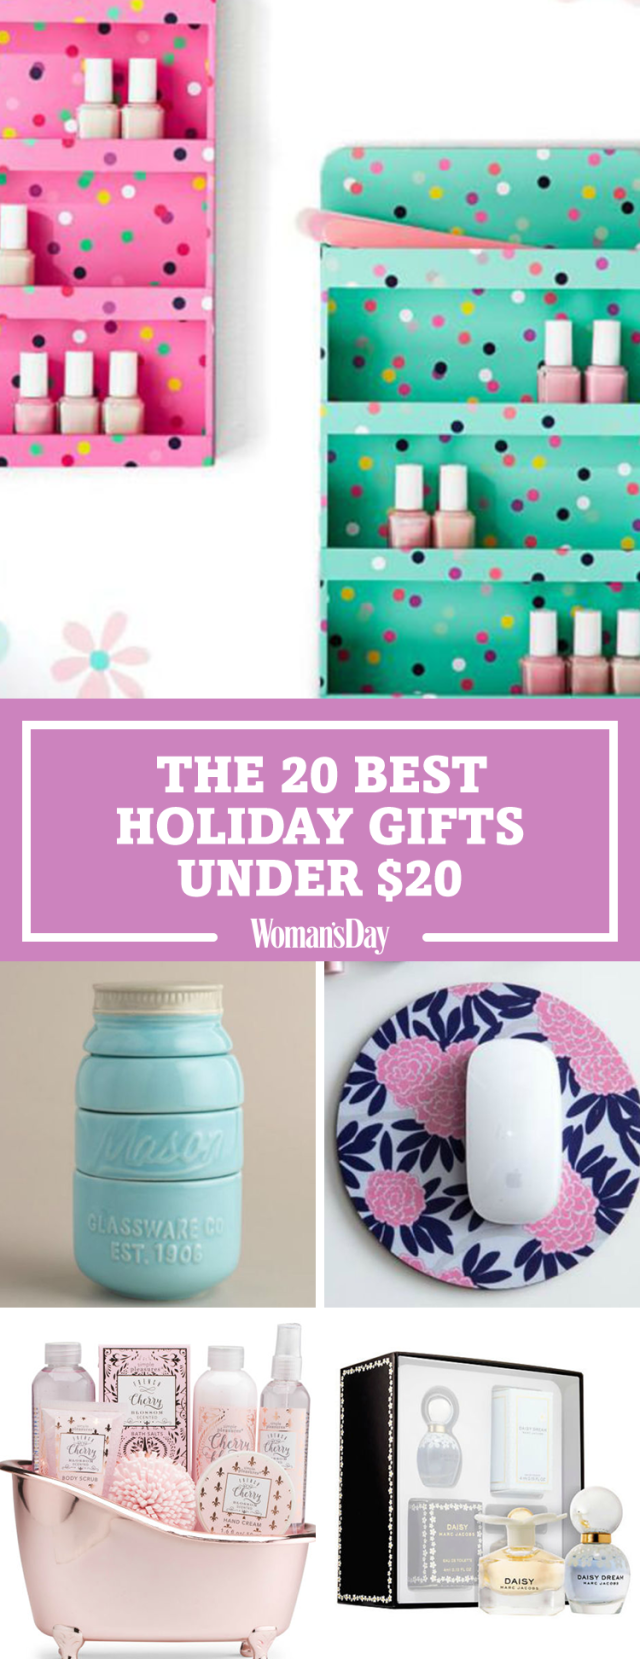 Gifts Under 20 Dollars | Division of Global Affairs